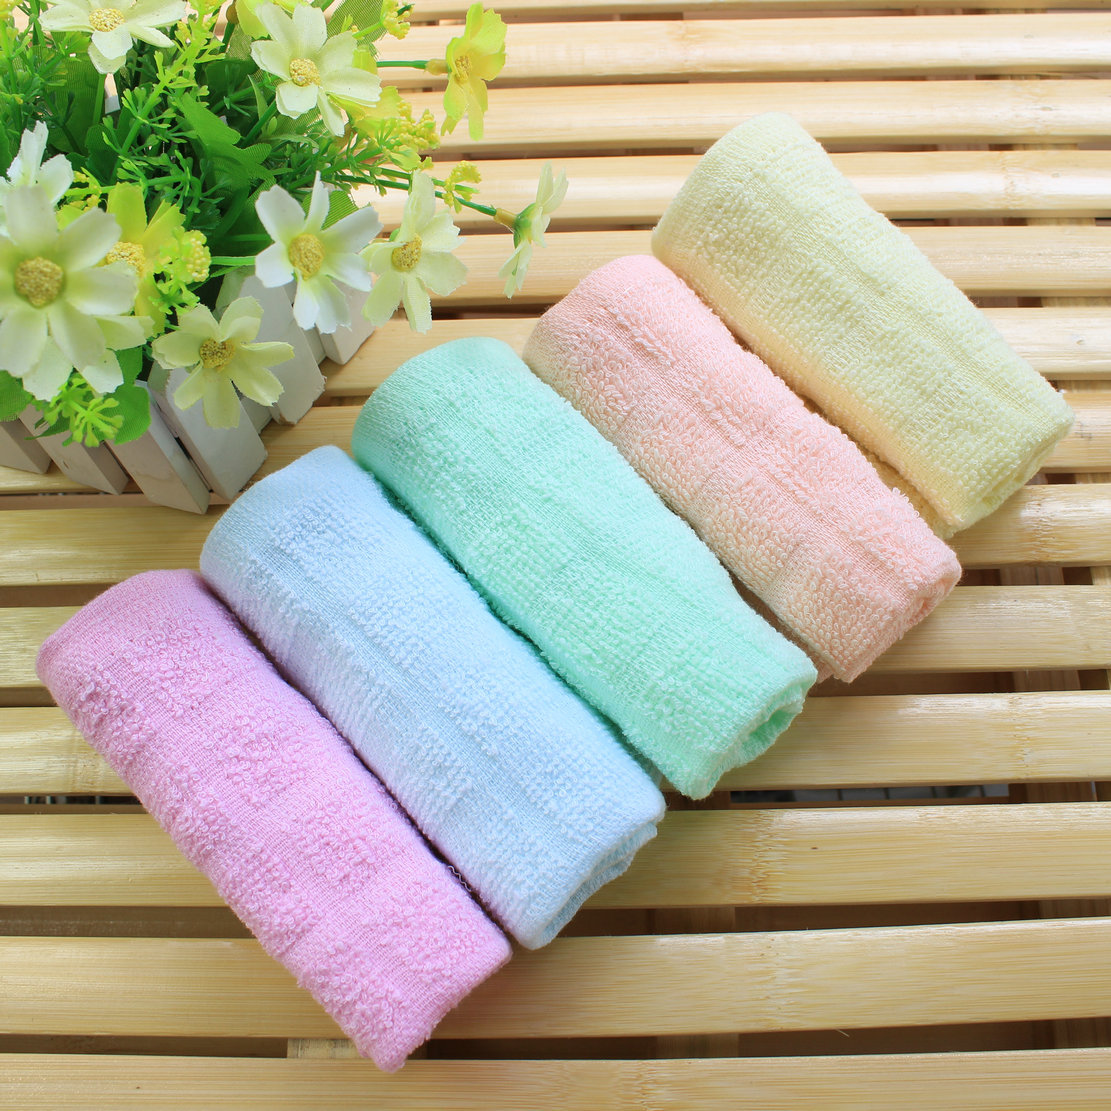 Microfiber Cleaning Cloth Pattern: 50 Pcs Microfiber Cleaning Towels Rags Kitchen Small Cloth